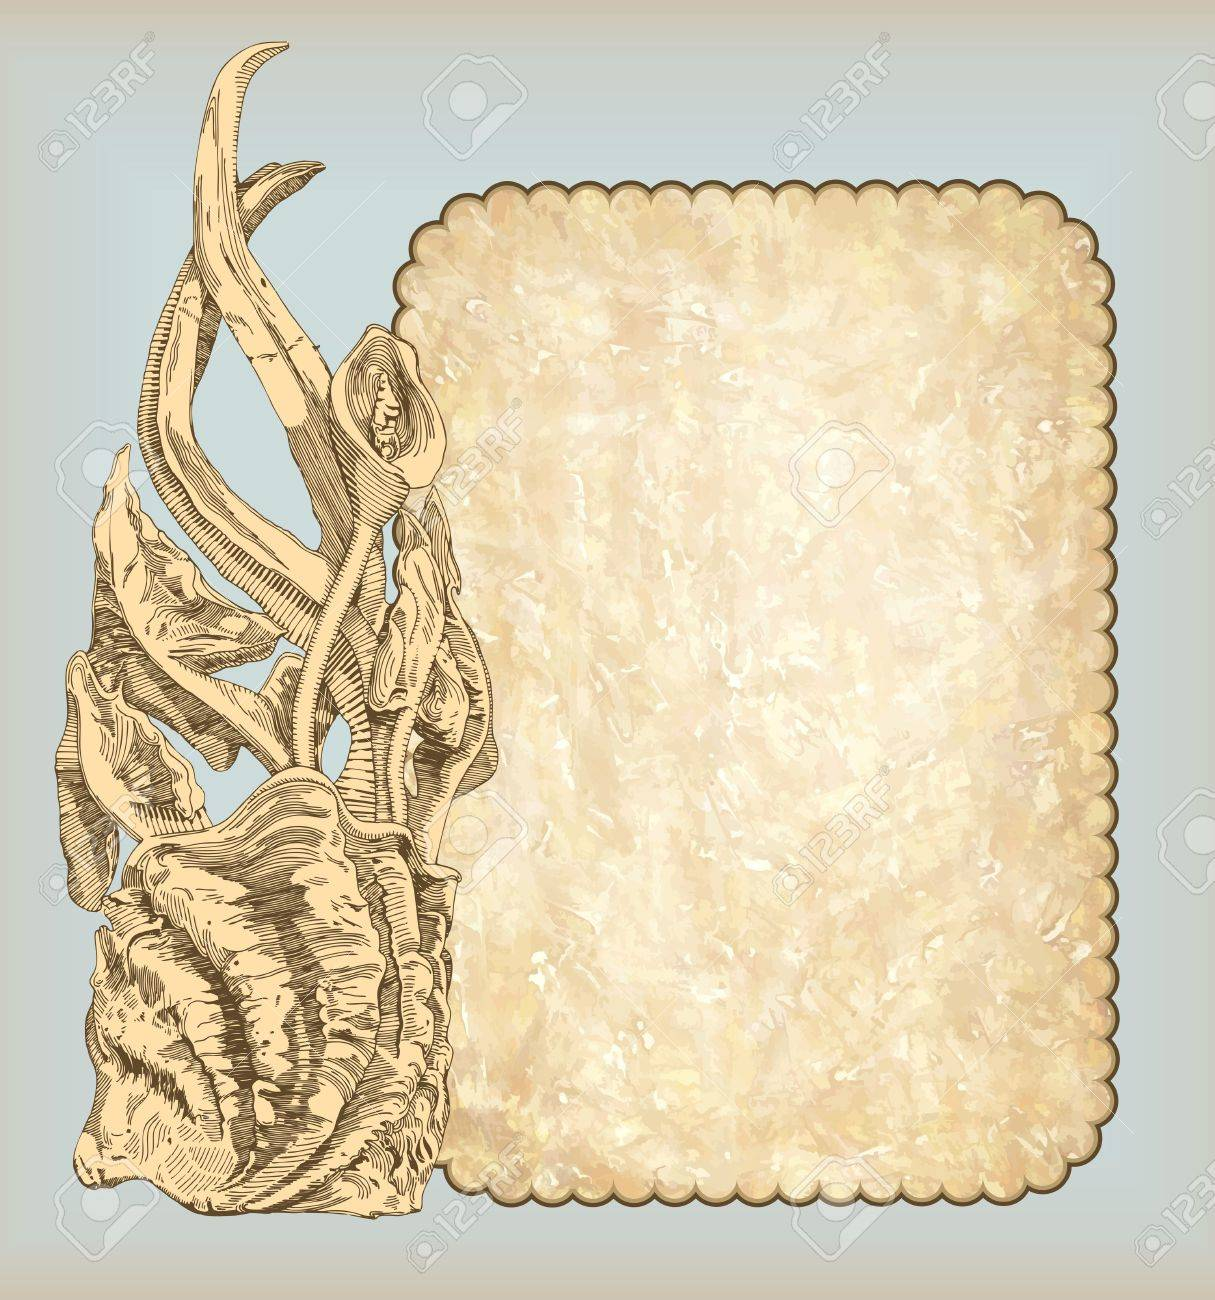 hand draw sketch vintage frame design with blank space for your text Stock Vector - 11638856